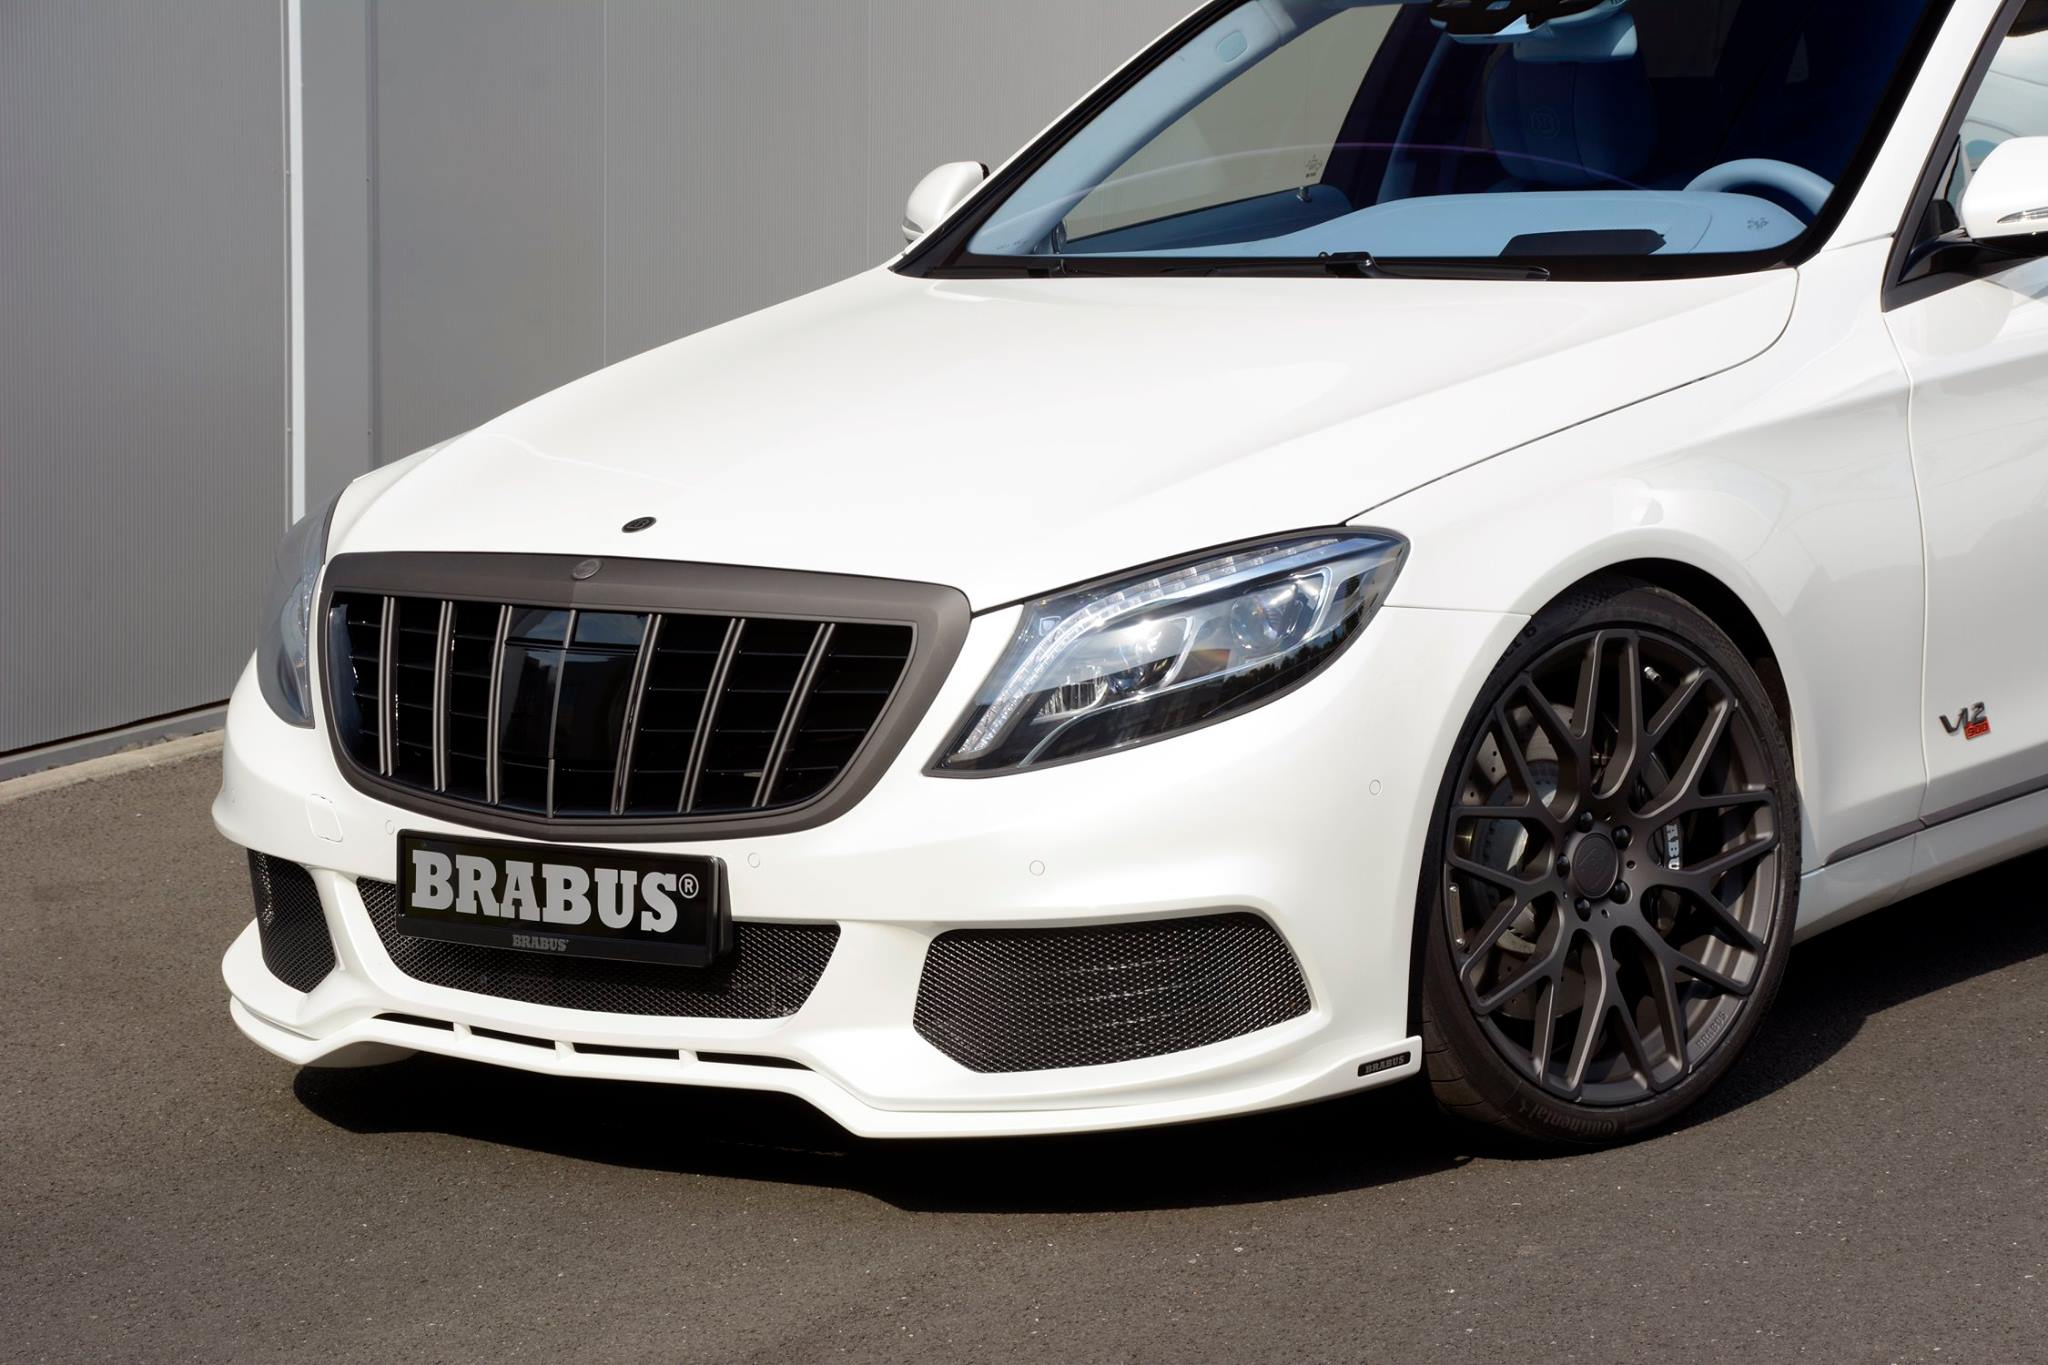 2018 Brabus Rocket 900 photo - 4